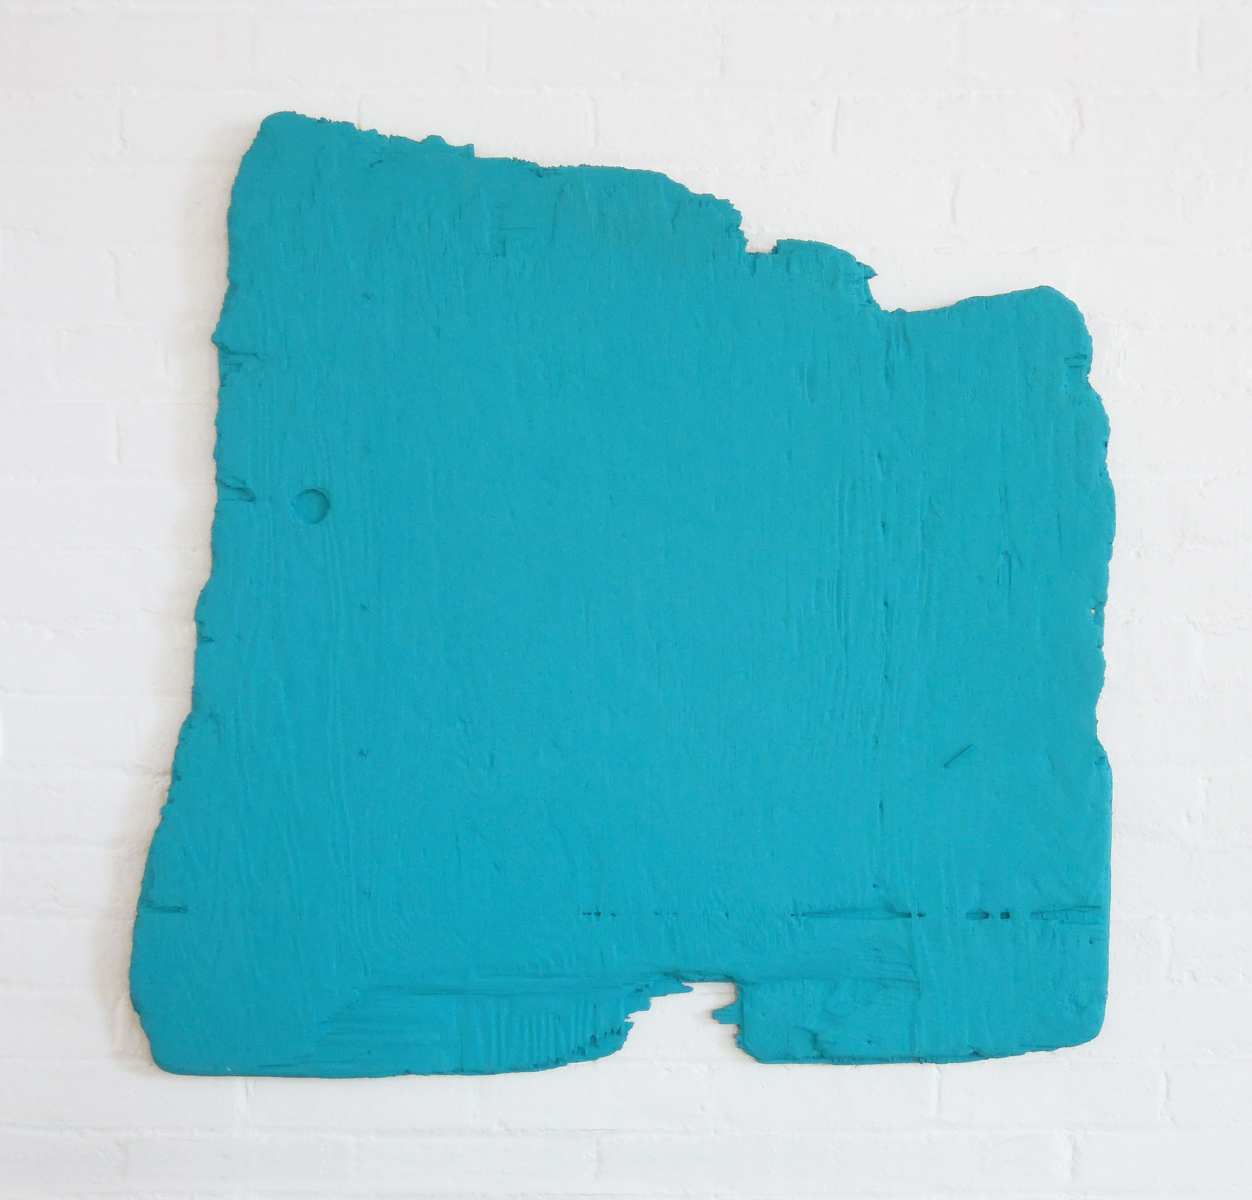 An irregularly shaped piece of plywood completely covered in turquoise paint.